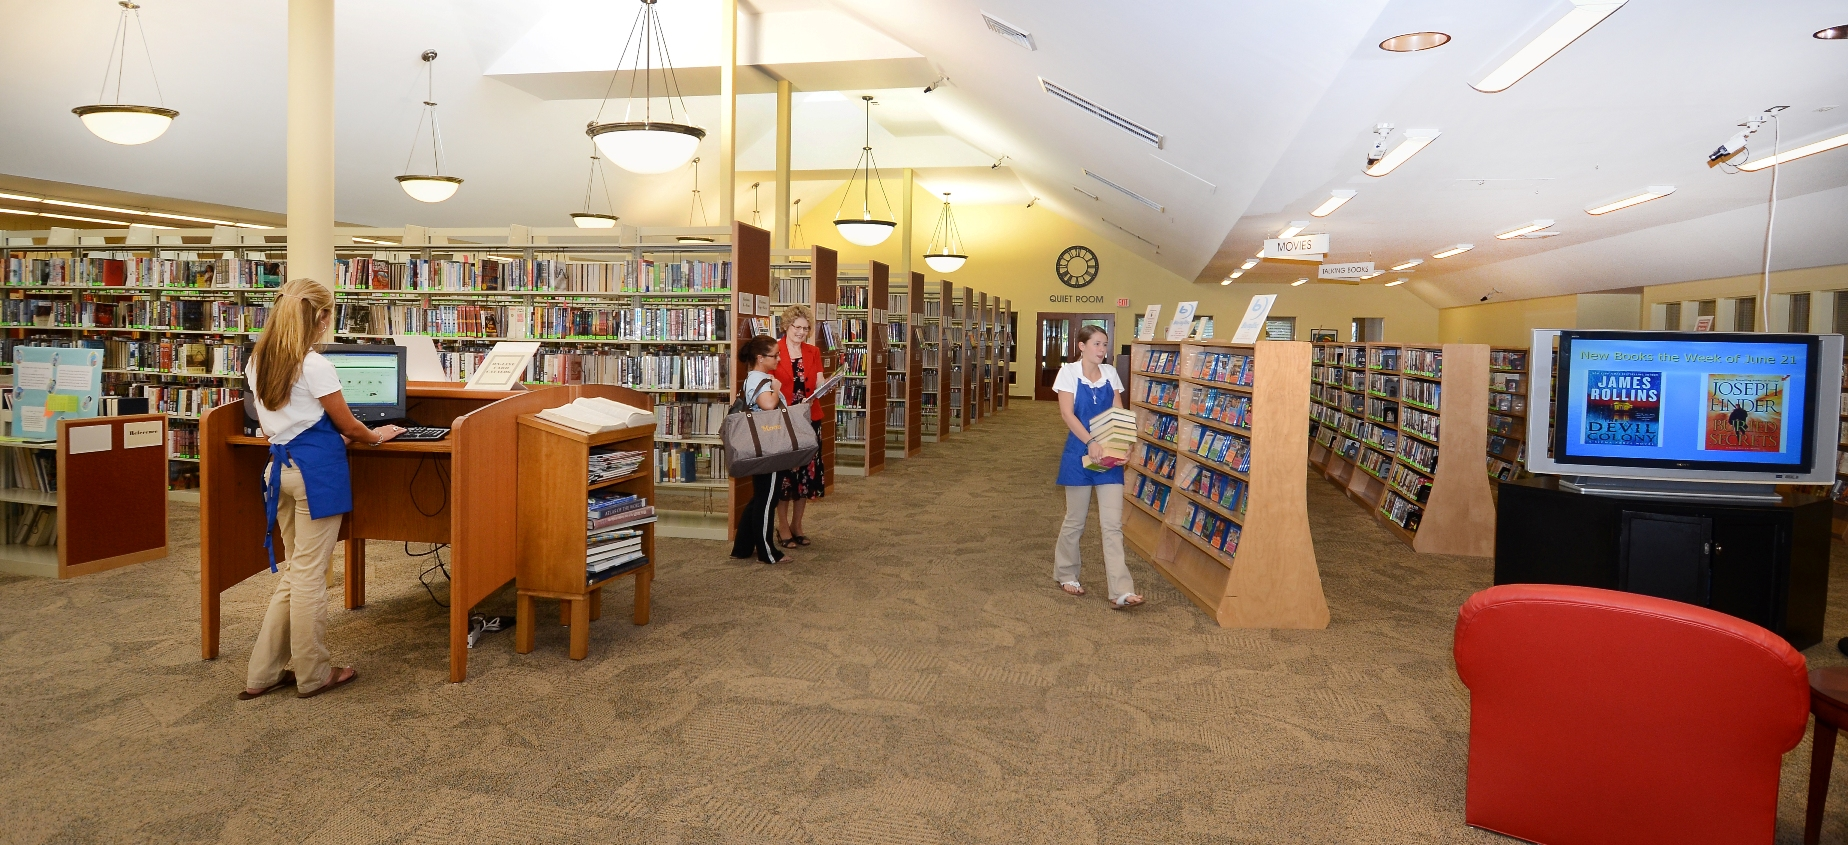 Interior of Library